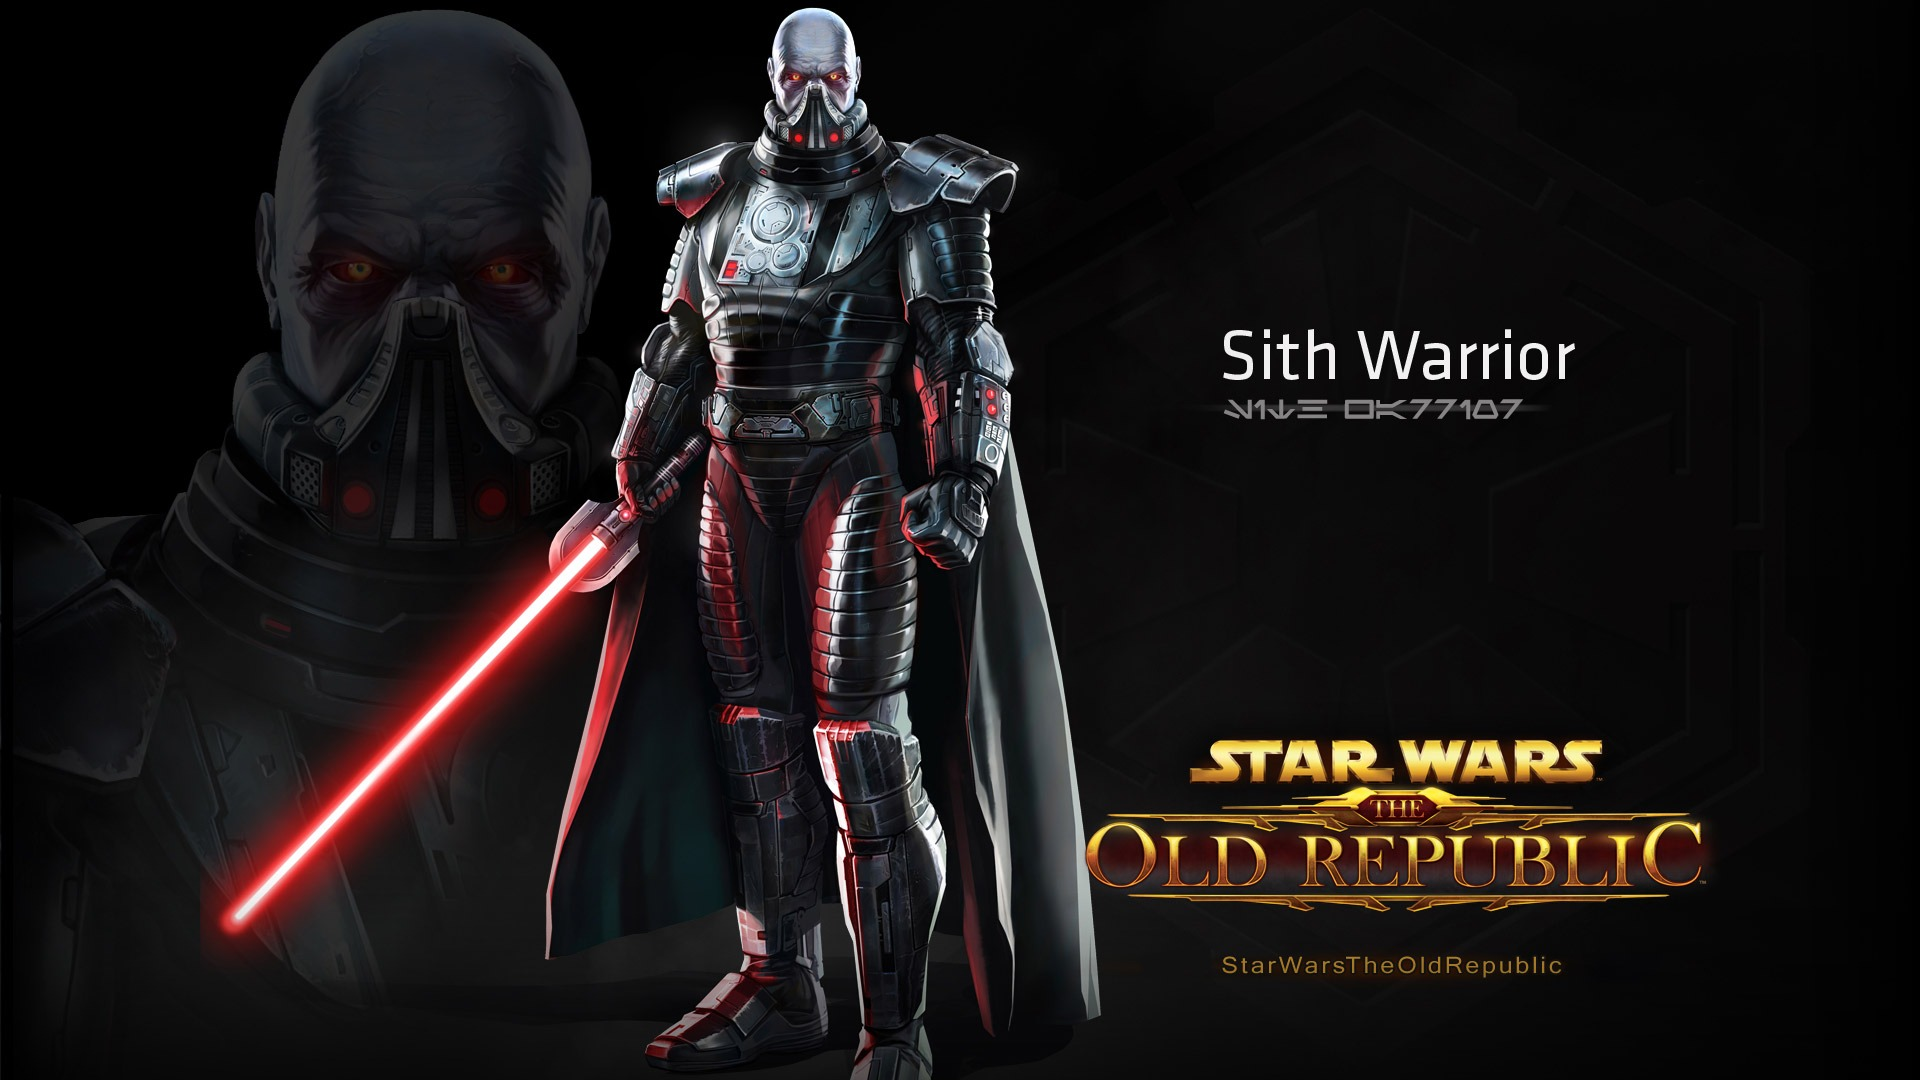 Sith Warrior Wallpaper Star Wars Games Wallpapers In Jpg Format For Free Download